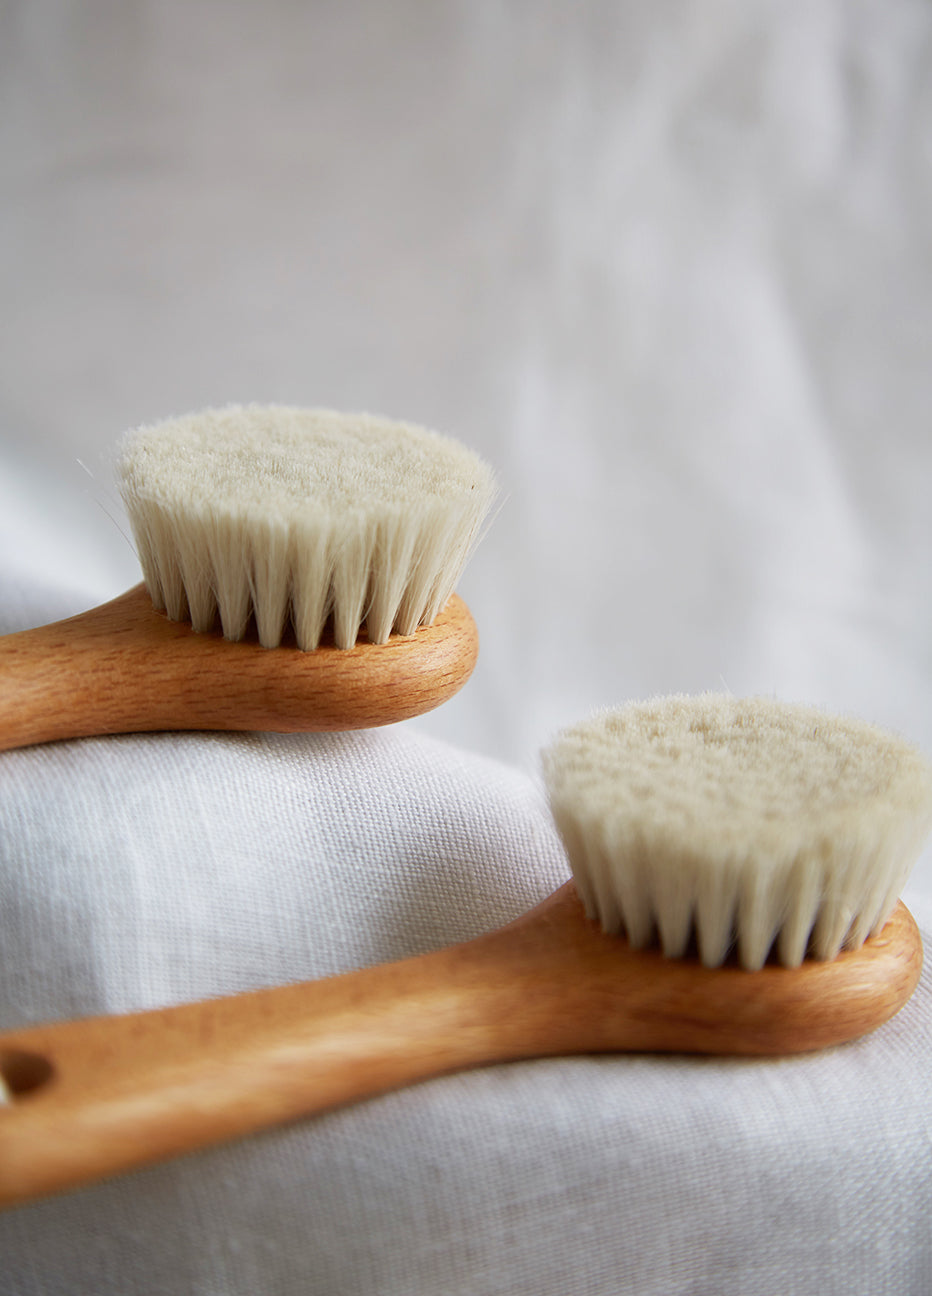 Heaven and Earth Goats Hair Face Brush